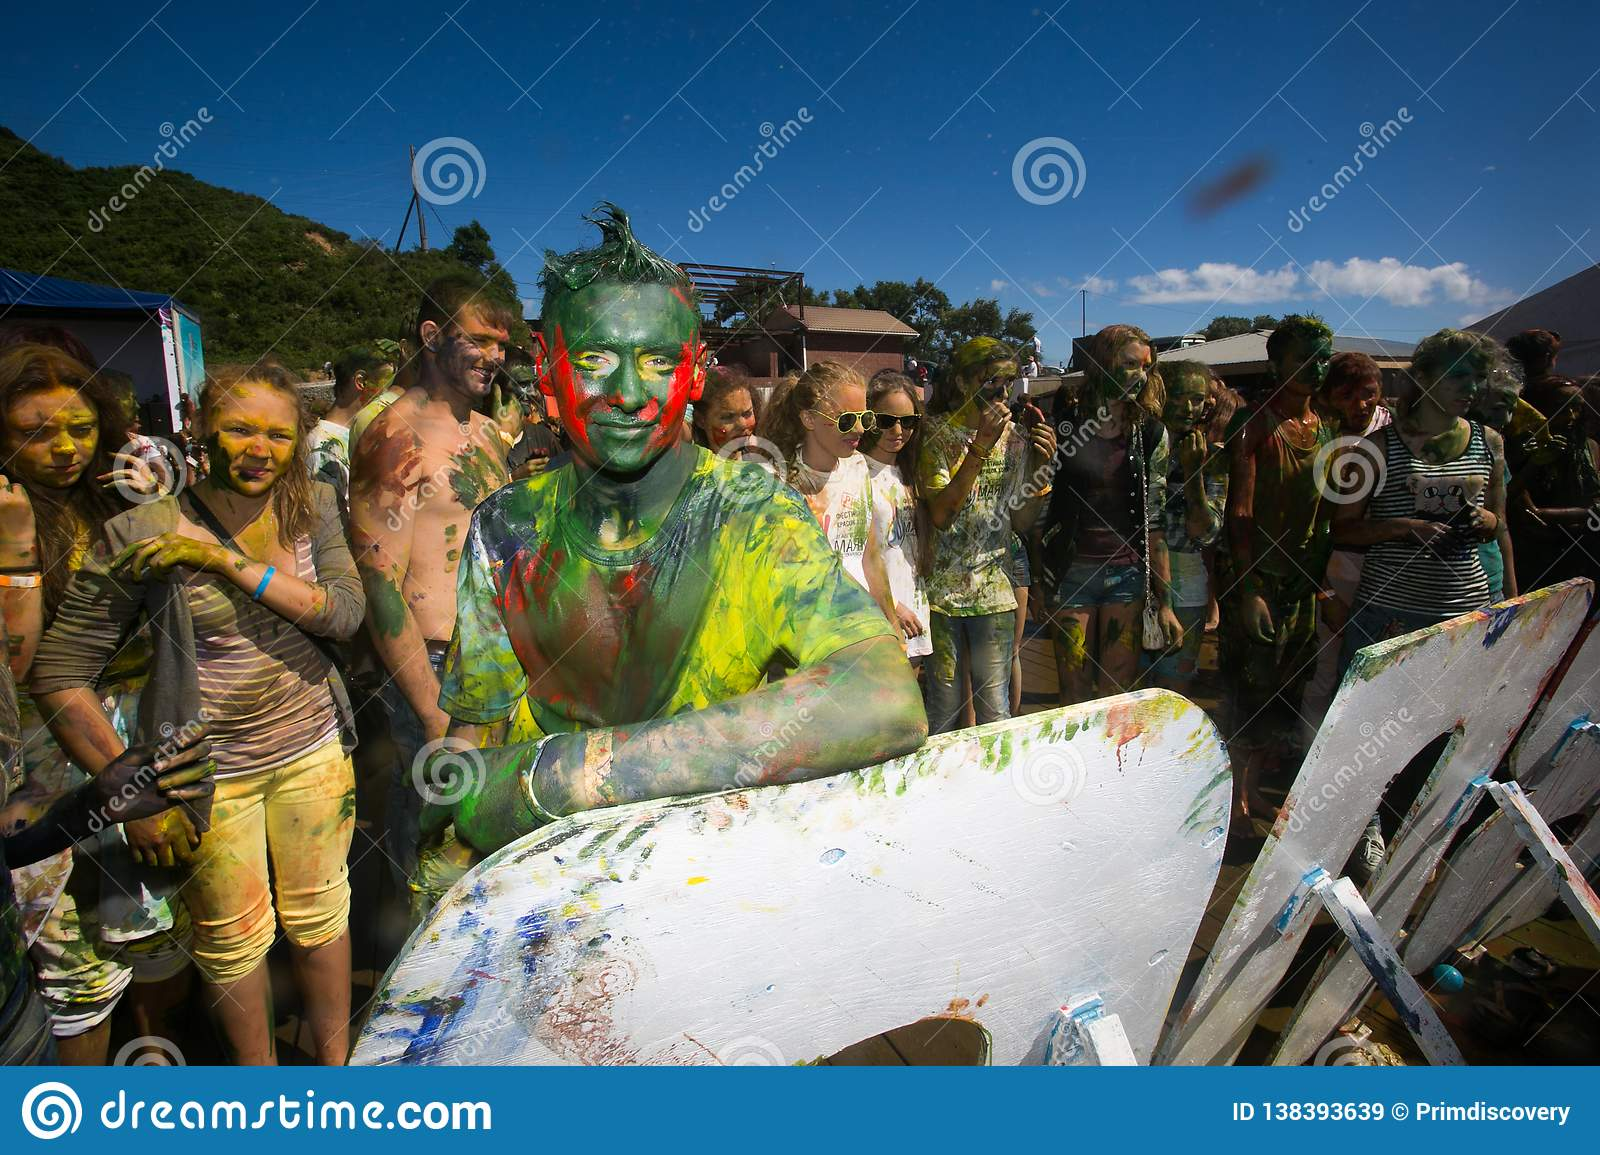 Young, decorated people participate in the Holi festival of colors in Vladivostok.